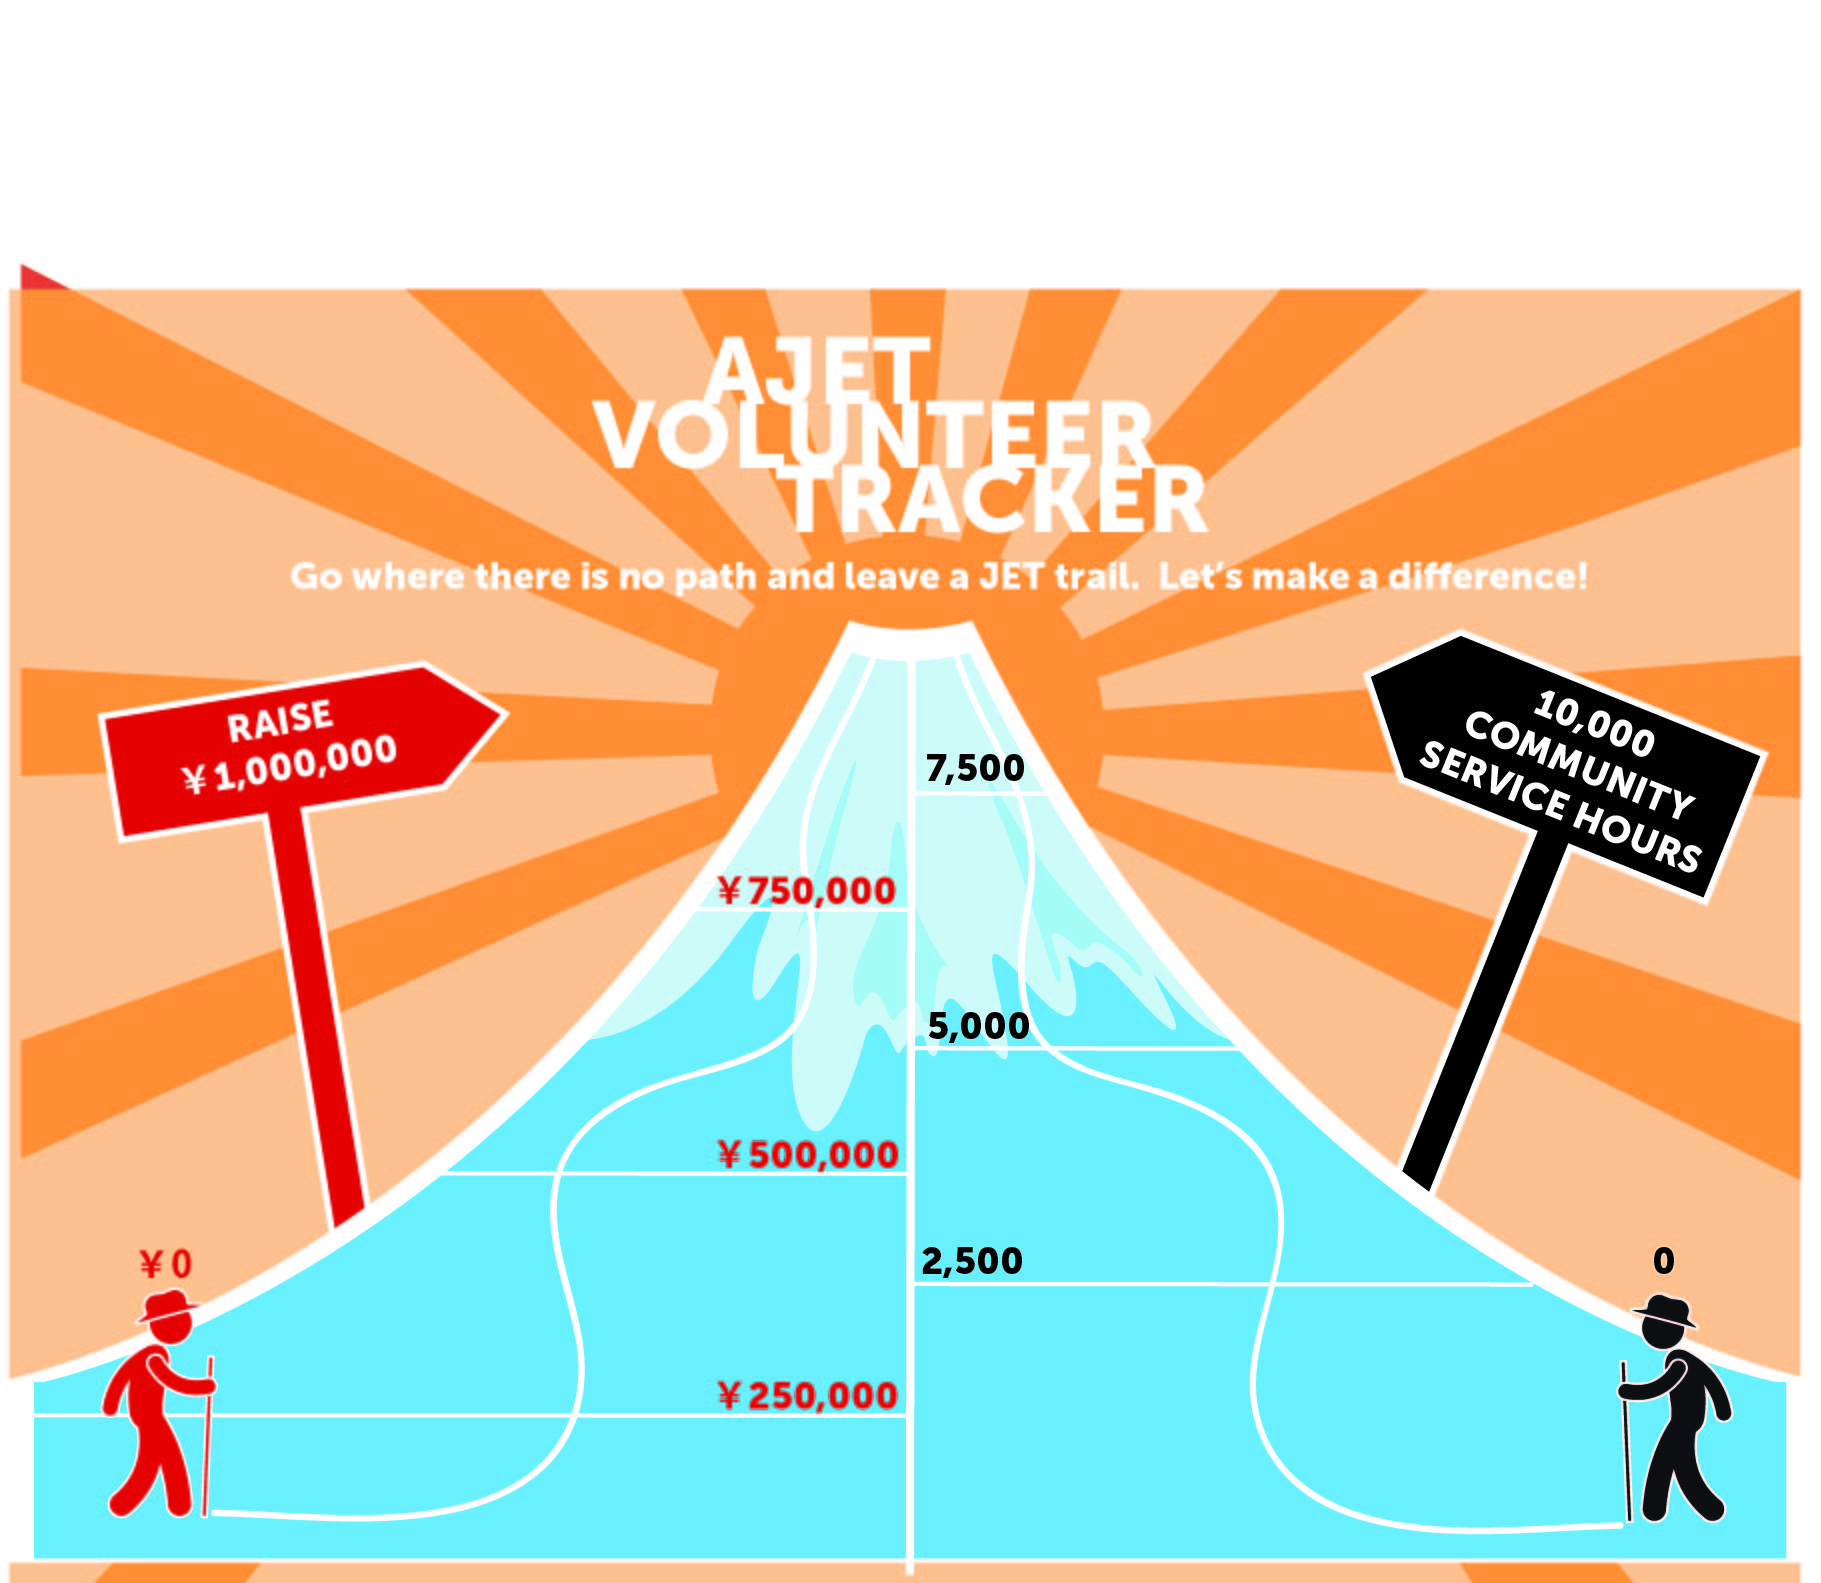 Volunteer Tracker shutterstock_73922971.eps